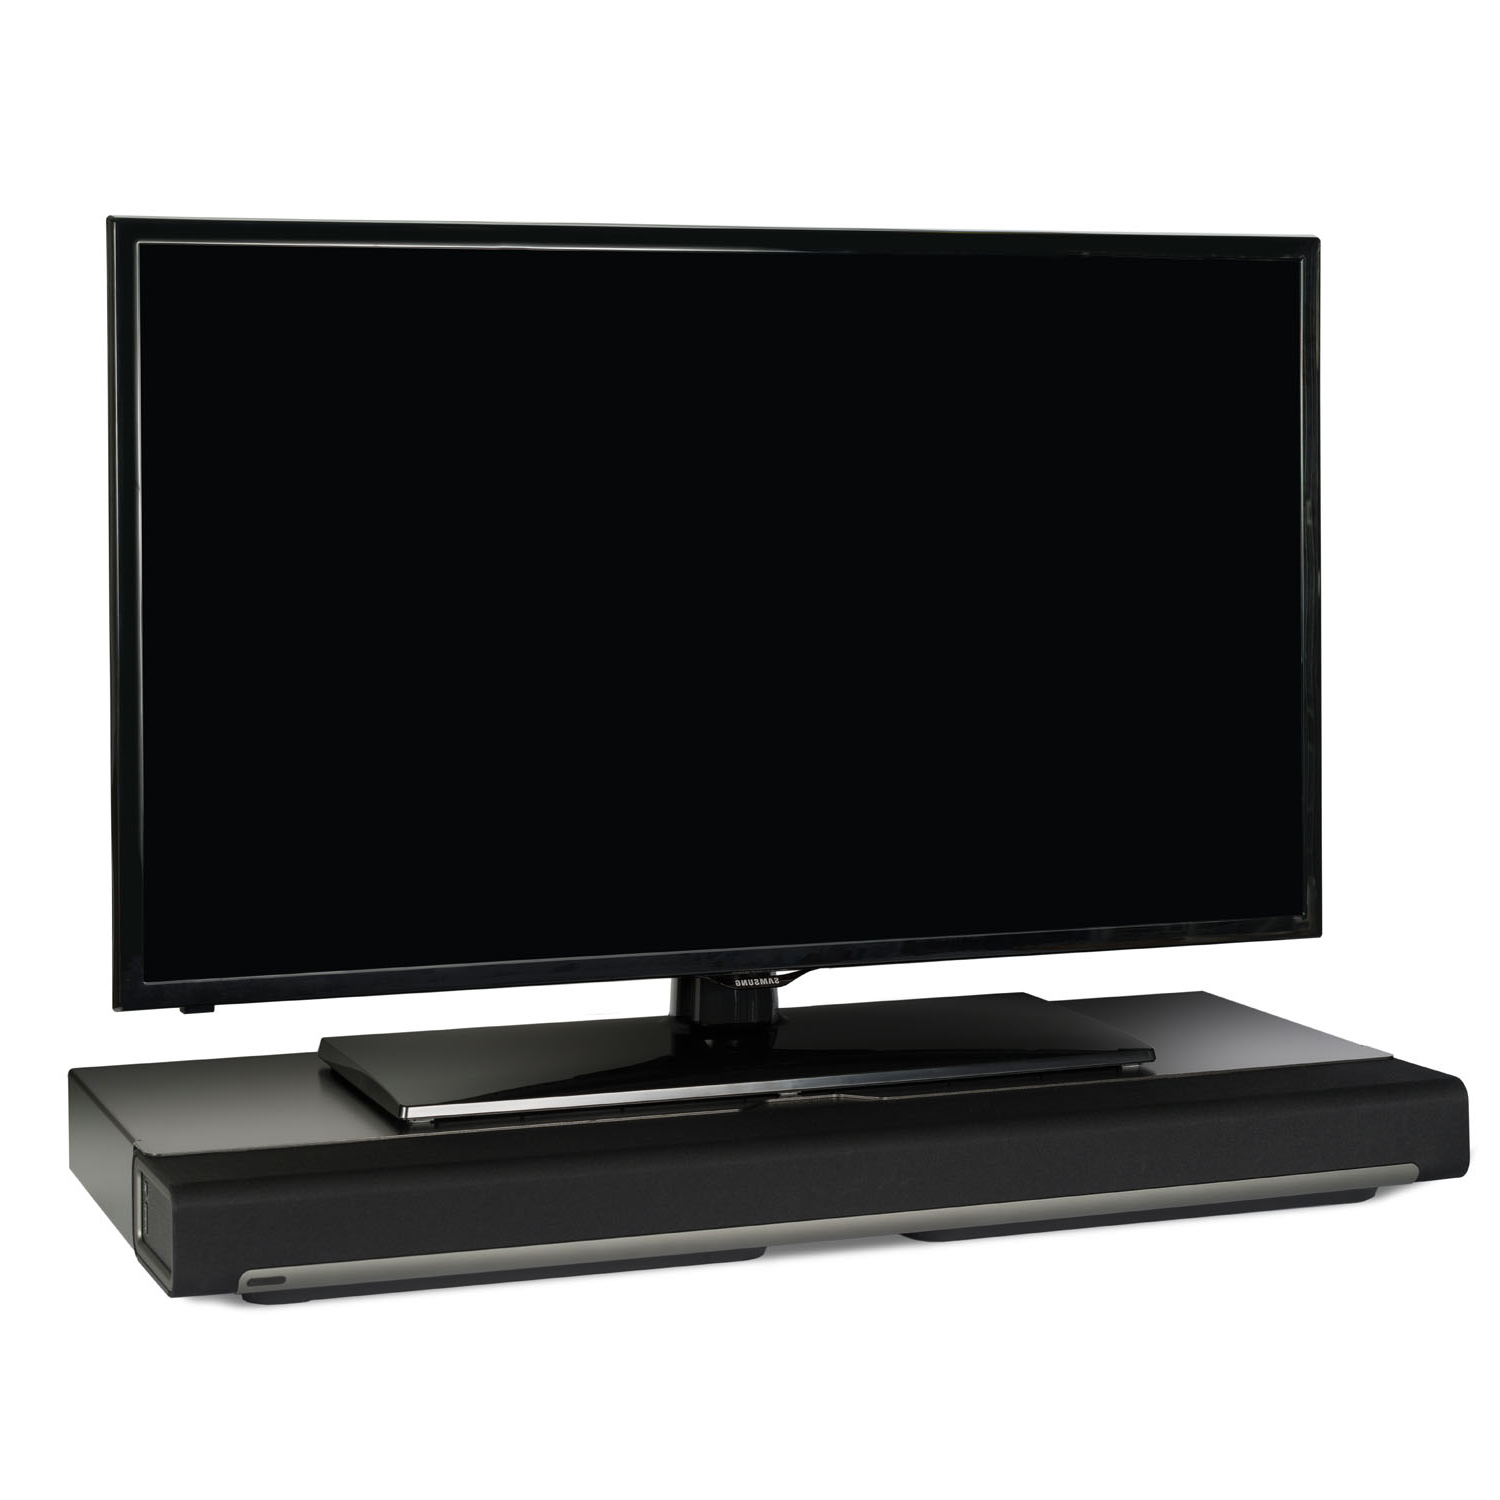 Flexson Tv Stand For Sonos Playbar – Black (Single) With Current Single Tv Stands (Gallery 9 of 20)